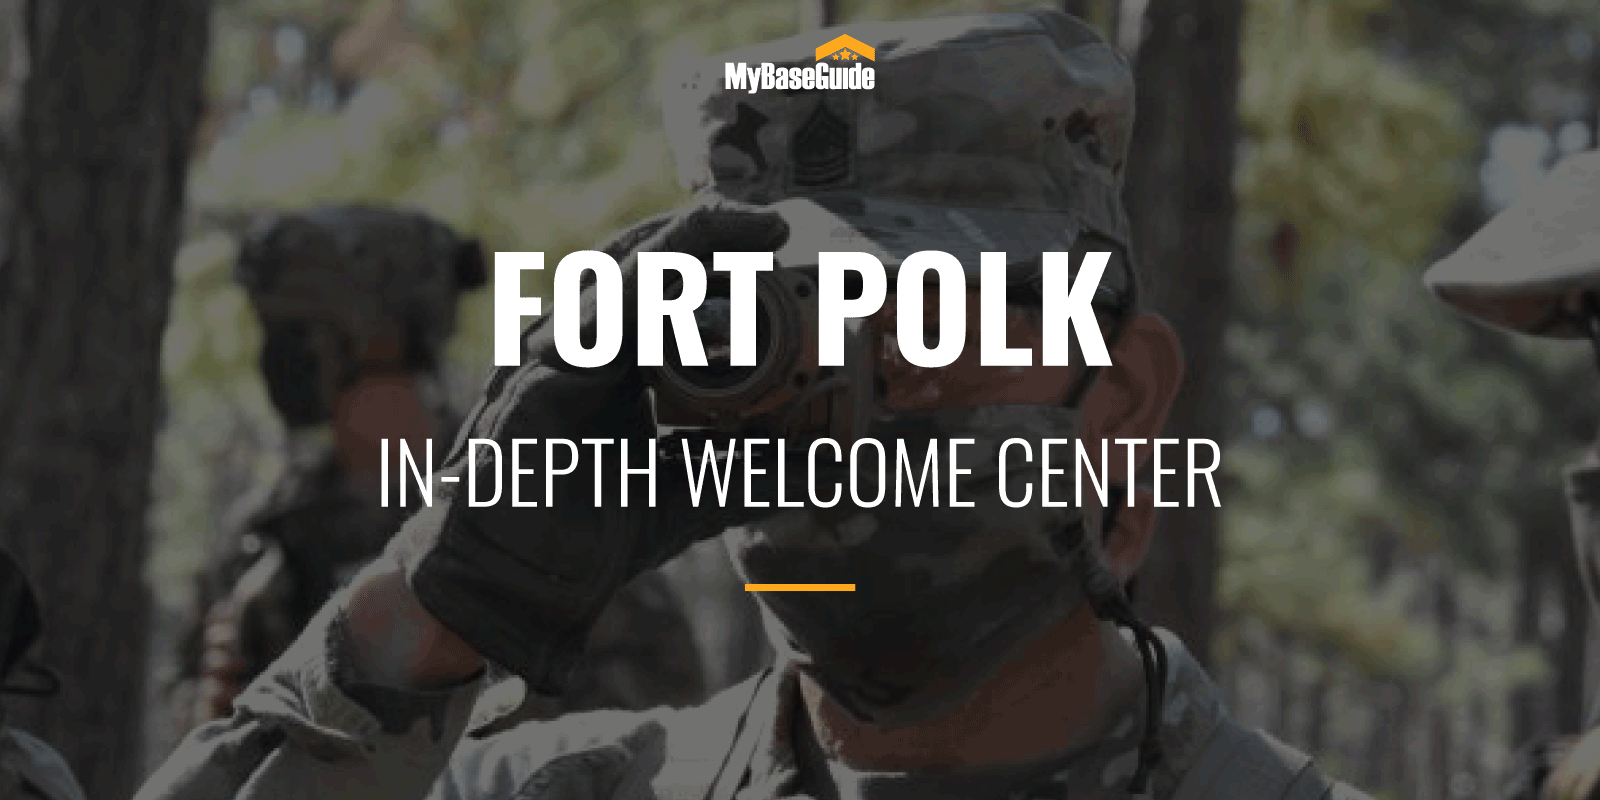 Fort Polk: In-Depth Welcome Center